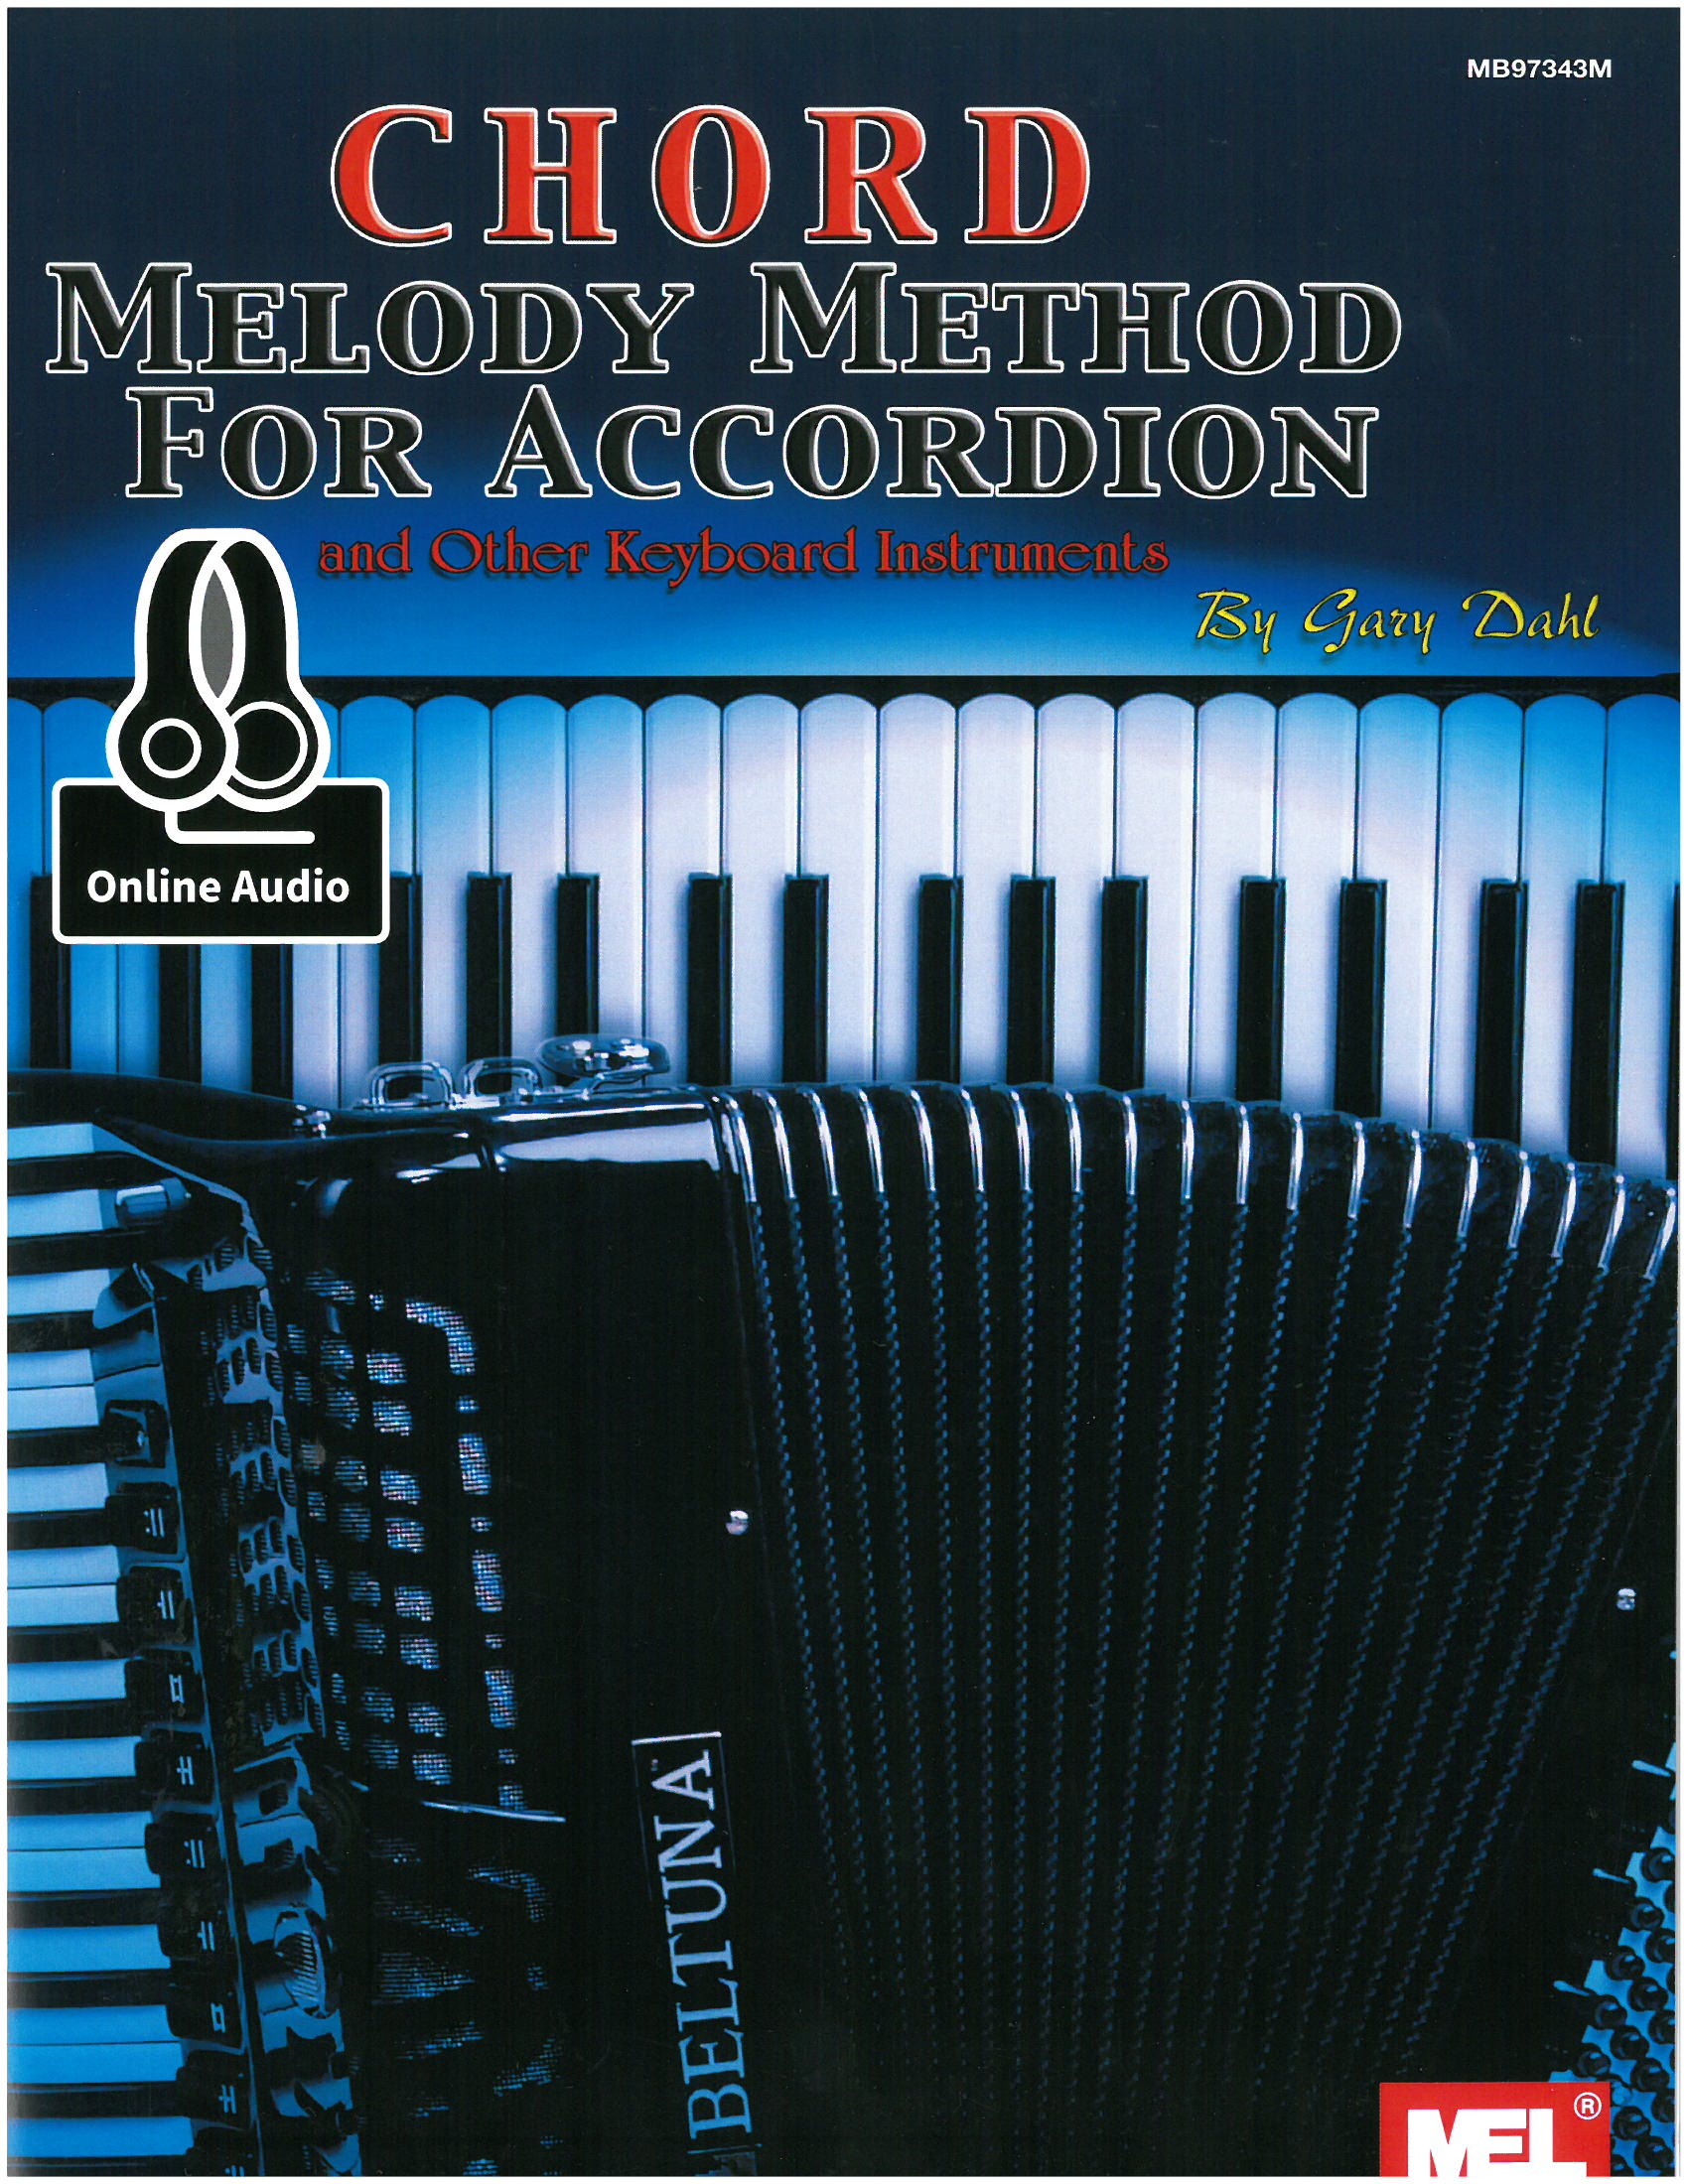 Chord Melody for accordion